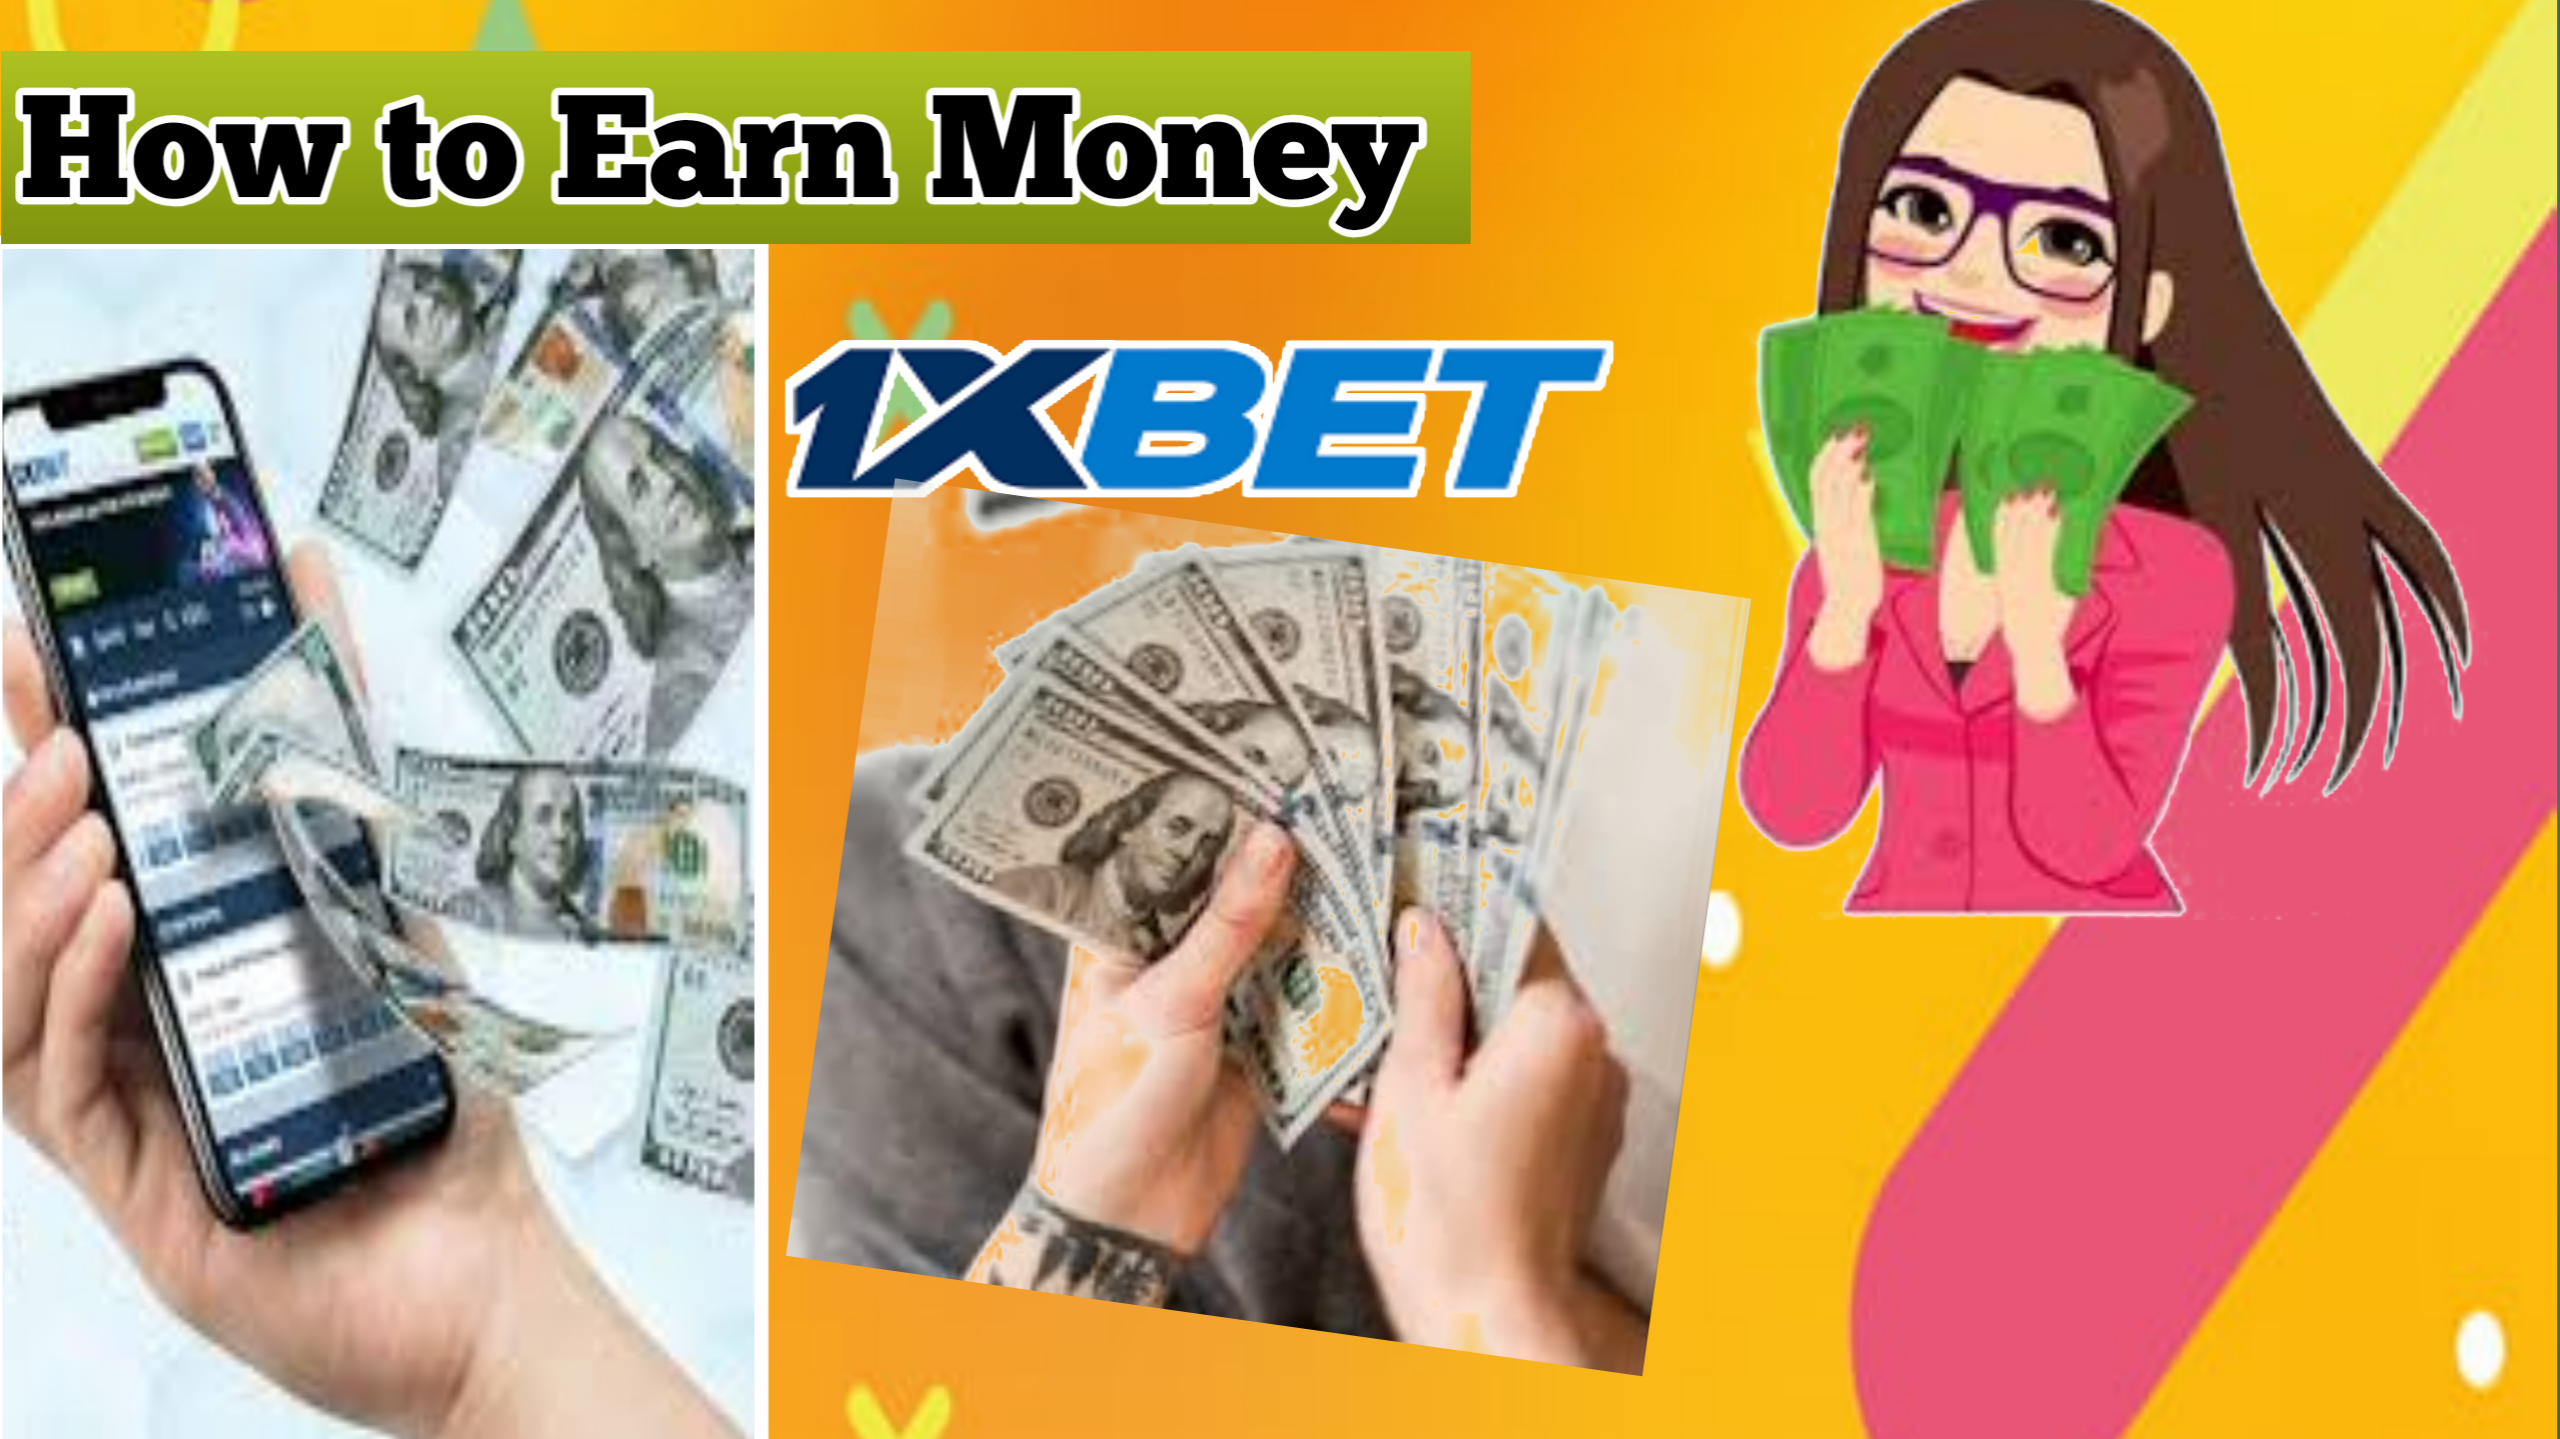 How To Earn Money From 1xbet in 2021